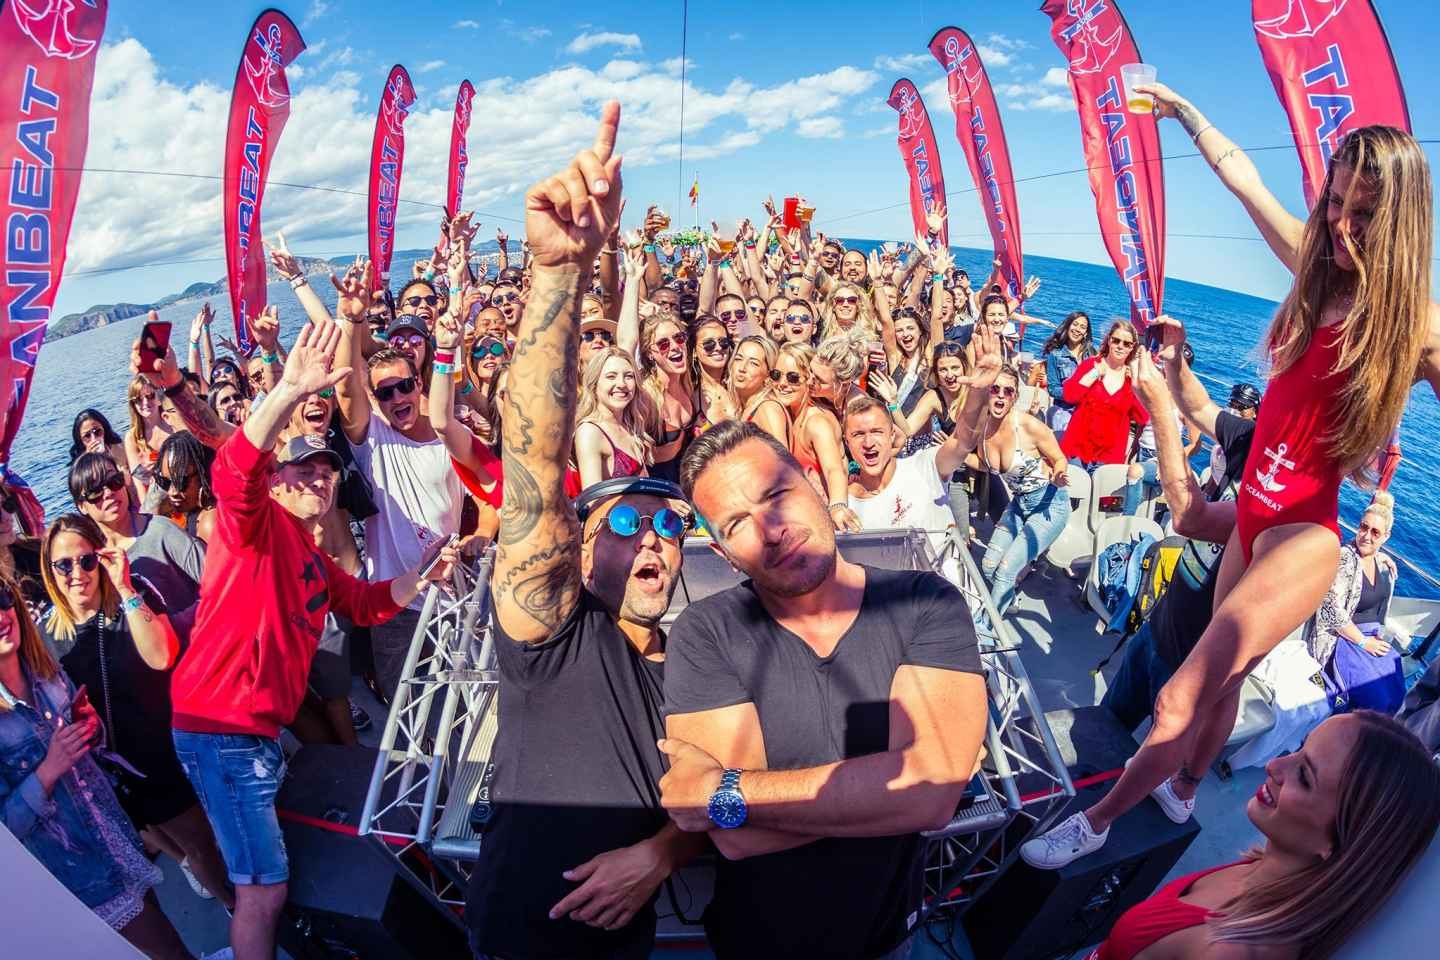 Ibiza: All-Inclusive Oceanbeat Bootsparty mit offener Bar